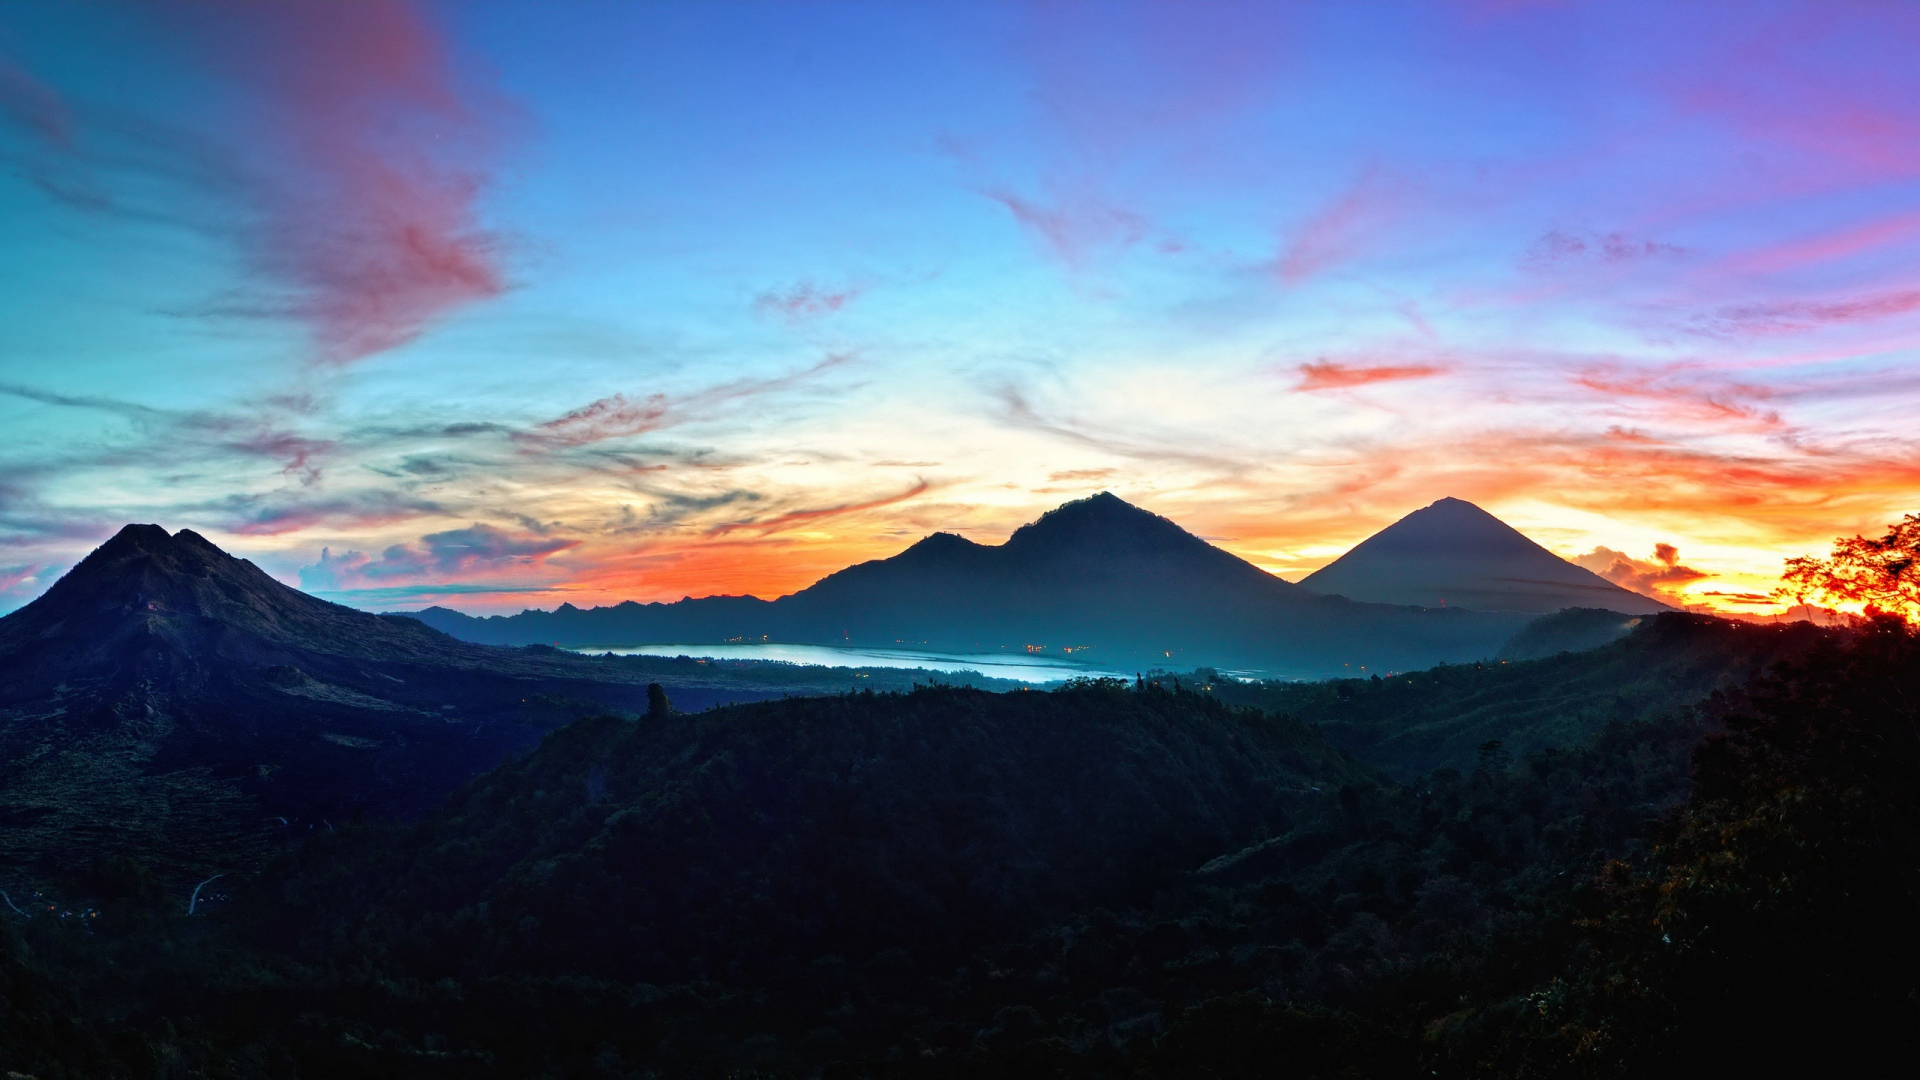 download wallpaper 1920x1080 mountains, sky, bali, sunrise